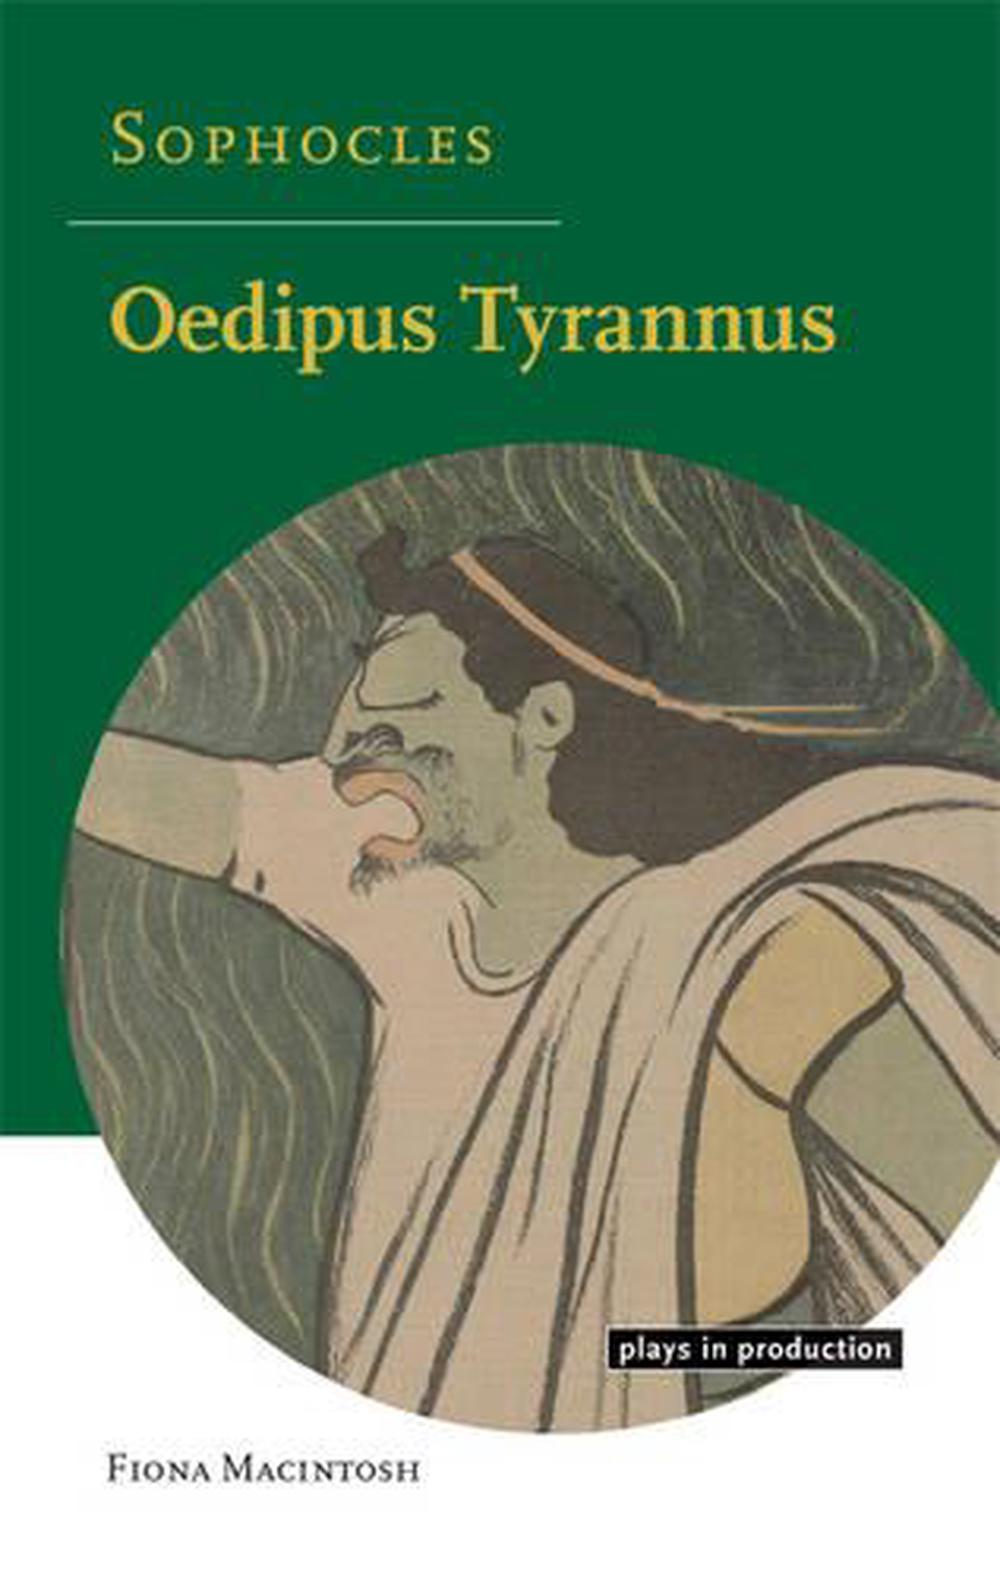 oedipus tyrannus essay Dana spiegel danas@mitedu 4/15/98 21l001 oedipus tyrannus: evolution of free will the myth of oedipus is one of humanity's oldest stories it existed as a folktale in.